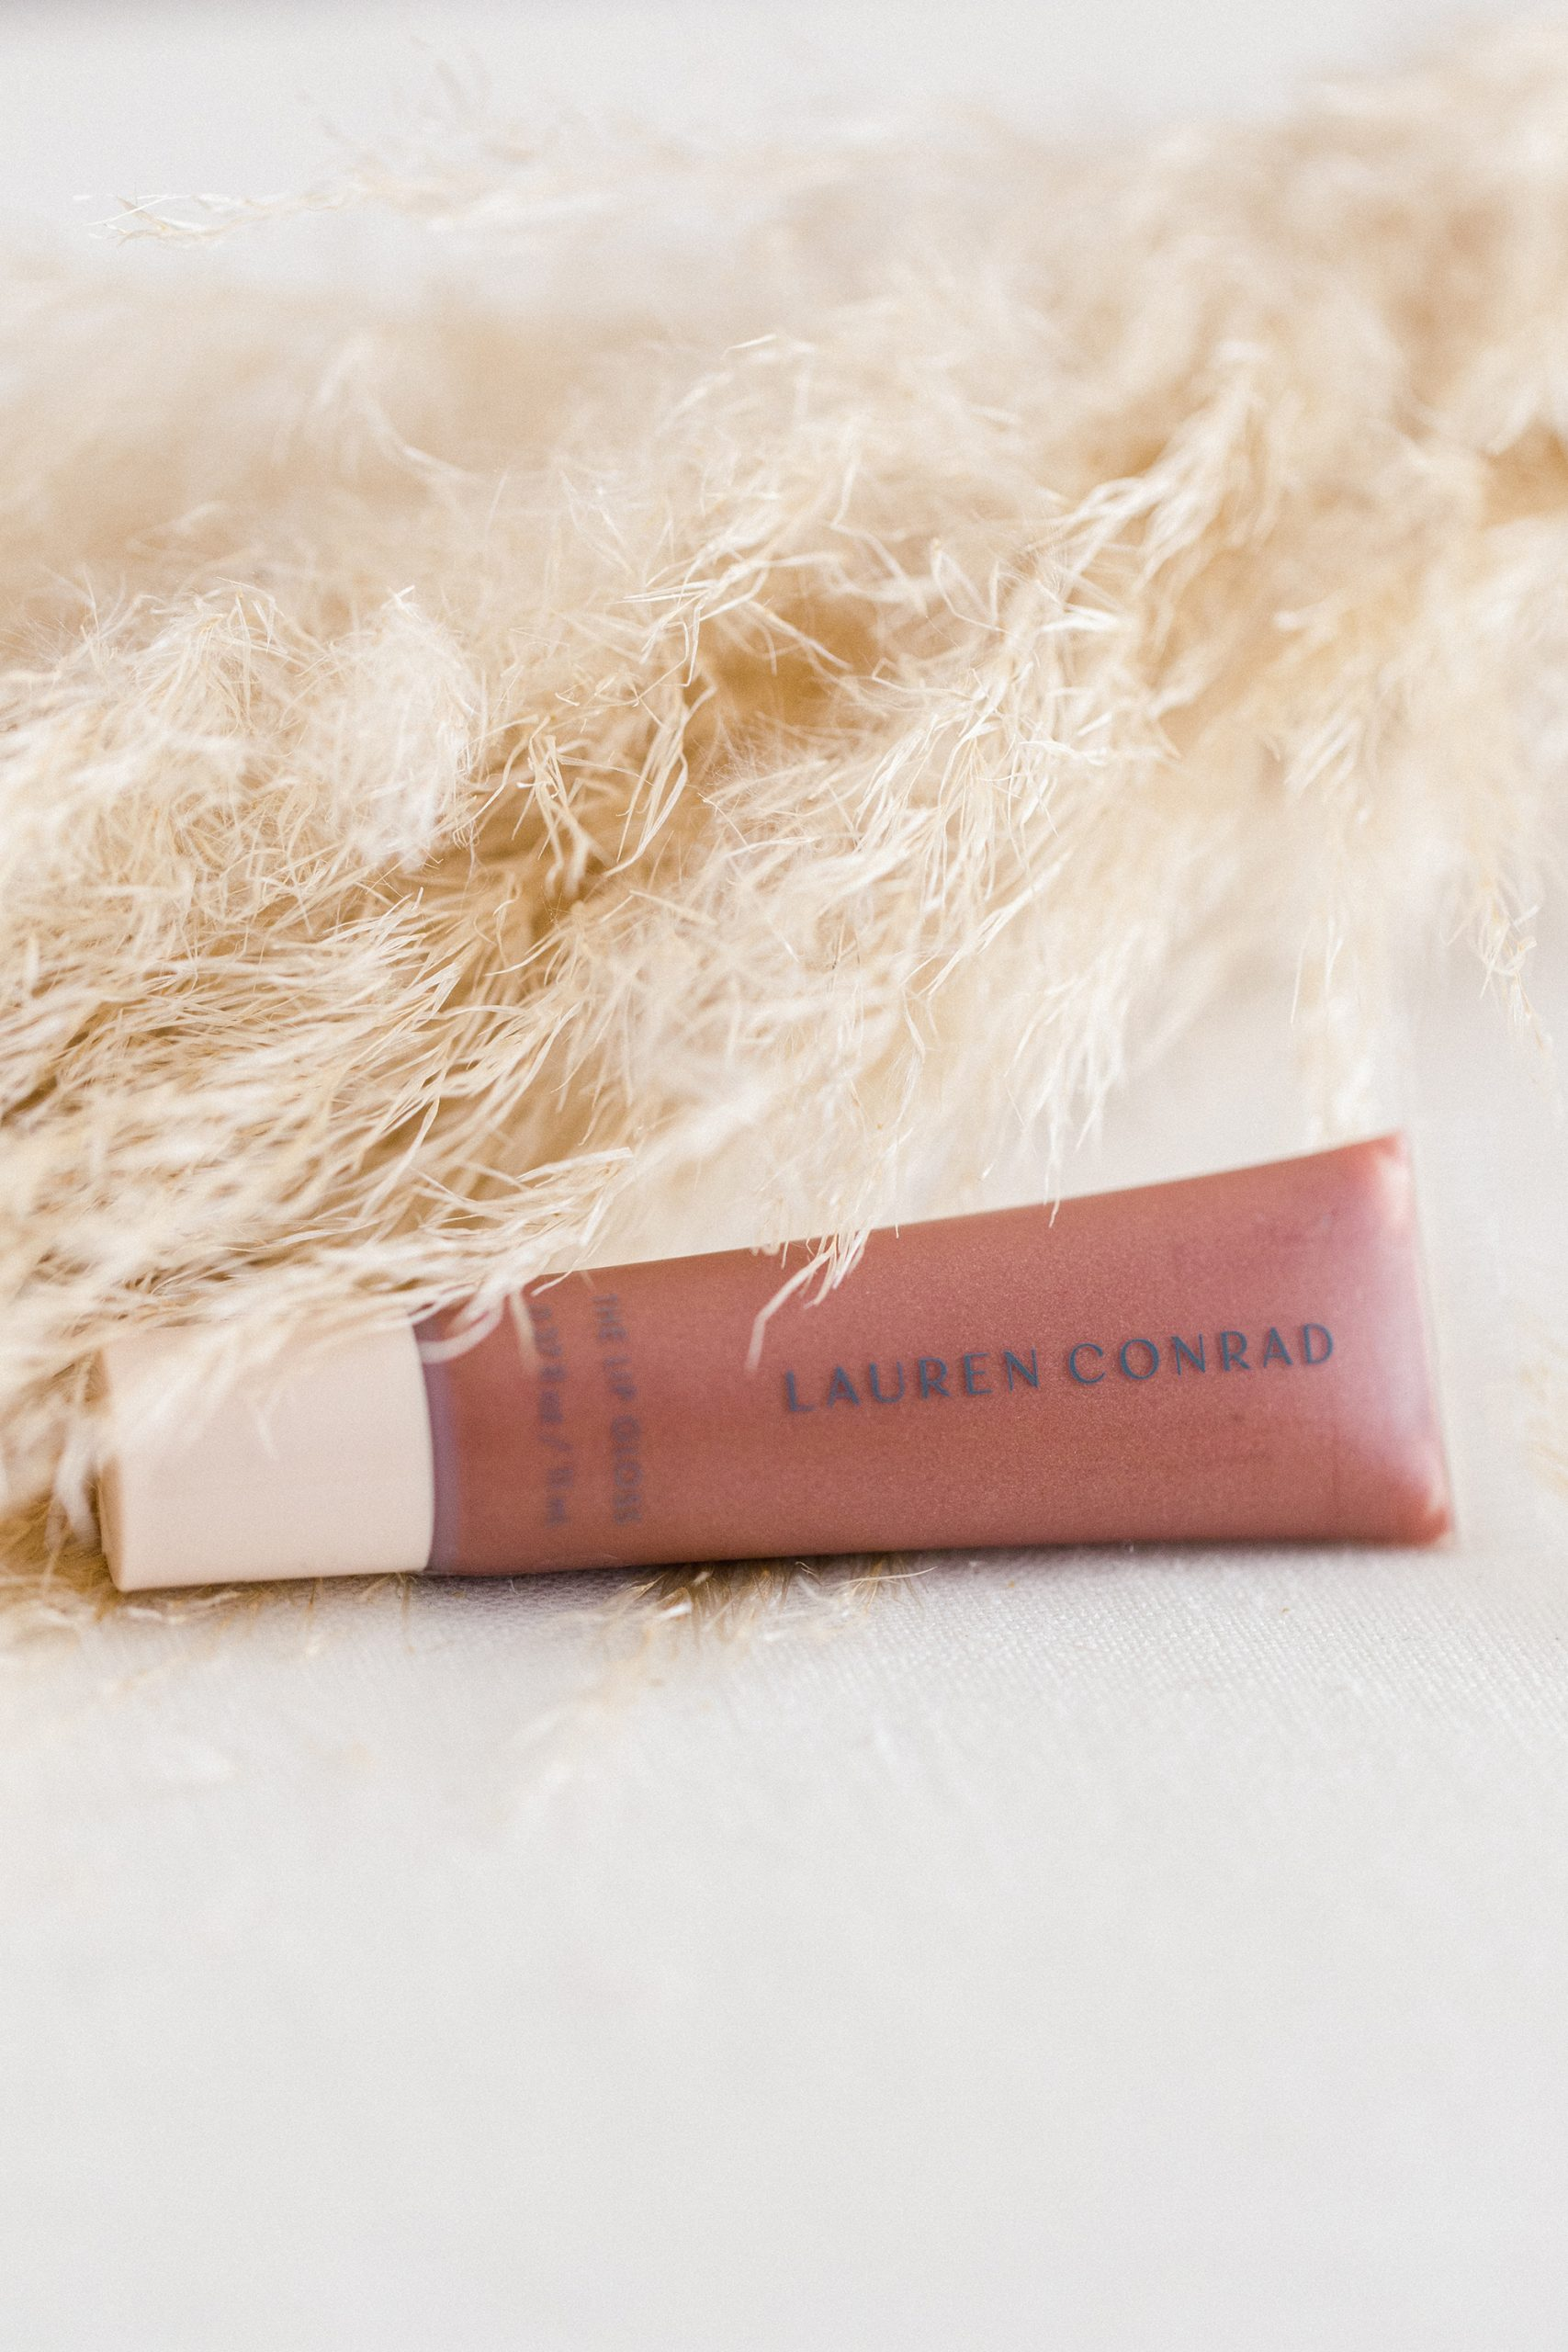 Meet The Lip Gloss From Lauren Conrad Beauty